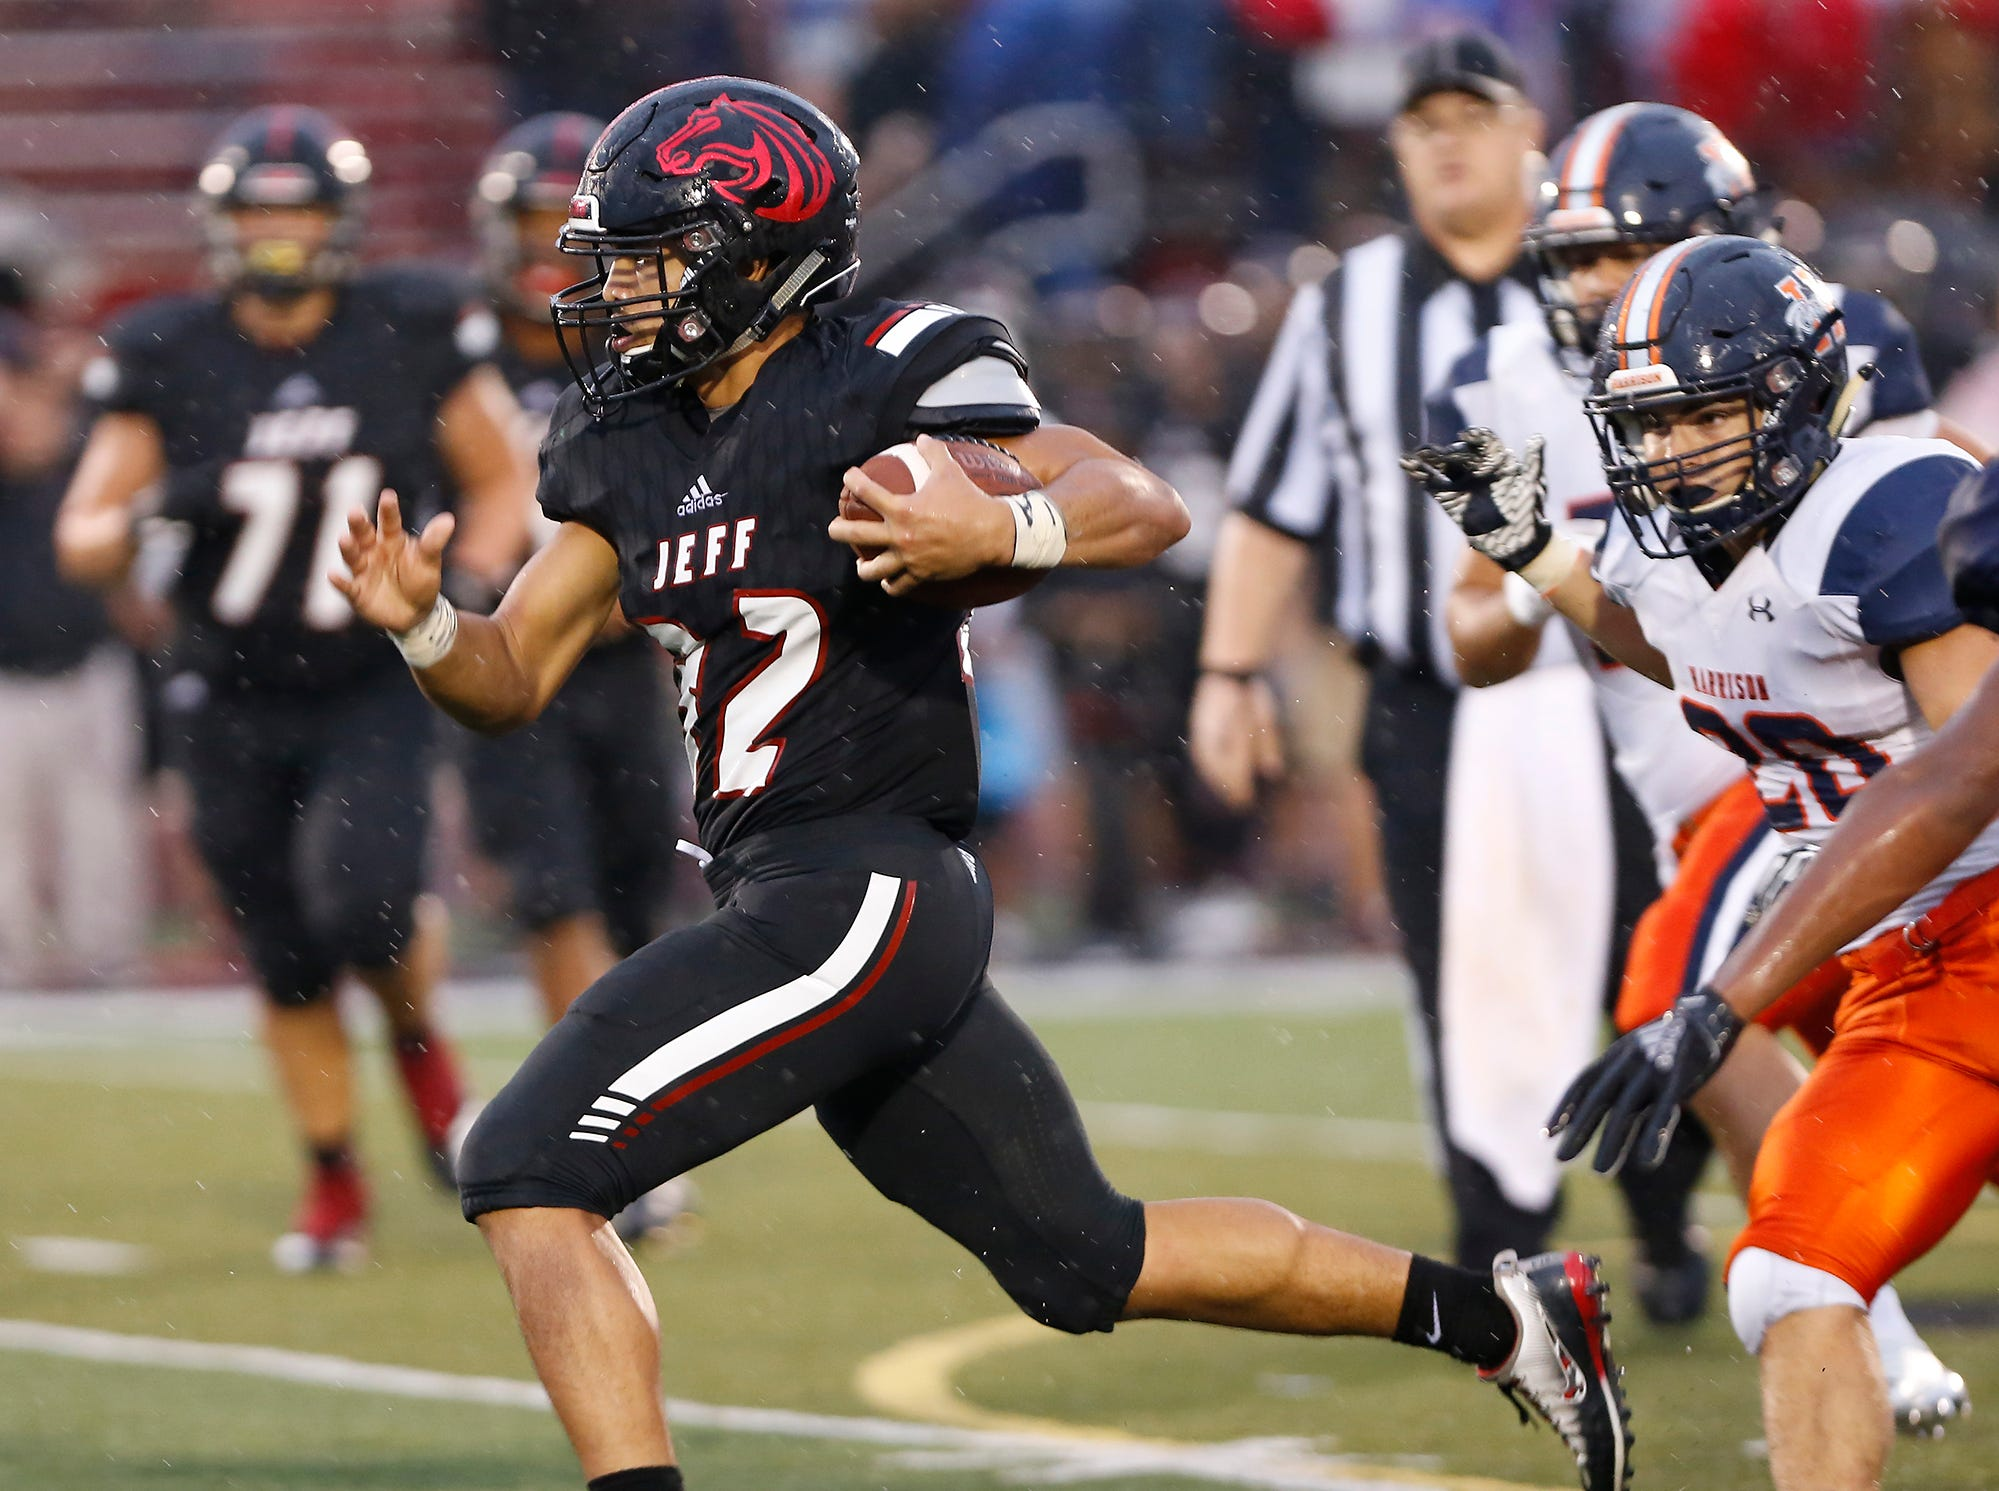 Marquis Munoz of Lafayette Jeff with a carry in the second quarter against Harrison Friday, September 7, 2018, at Scheumann Stadium. Jeff defeated Harrison 31-14.